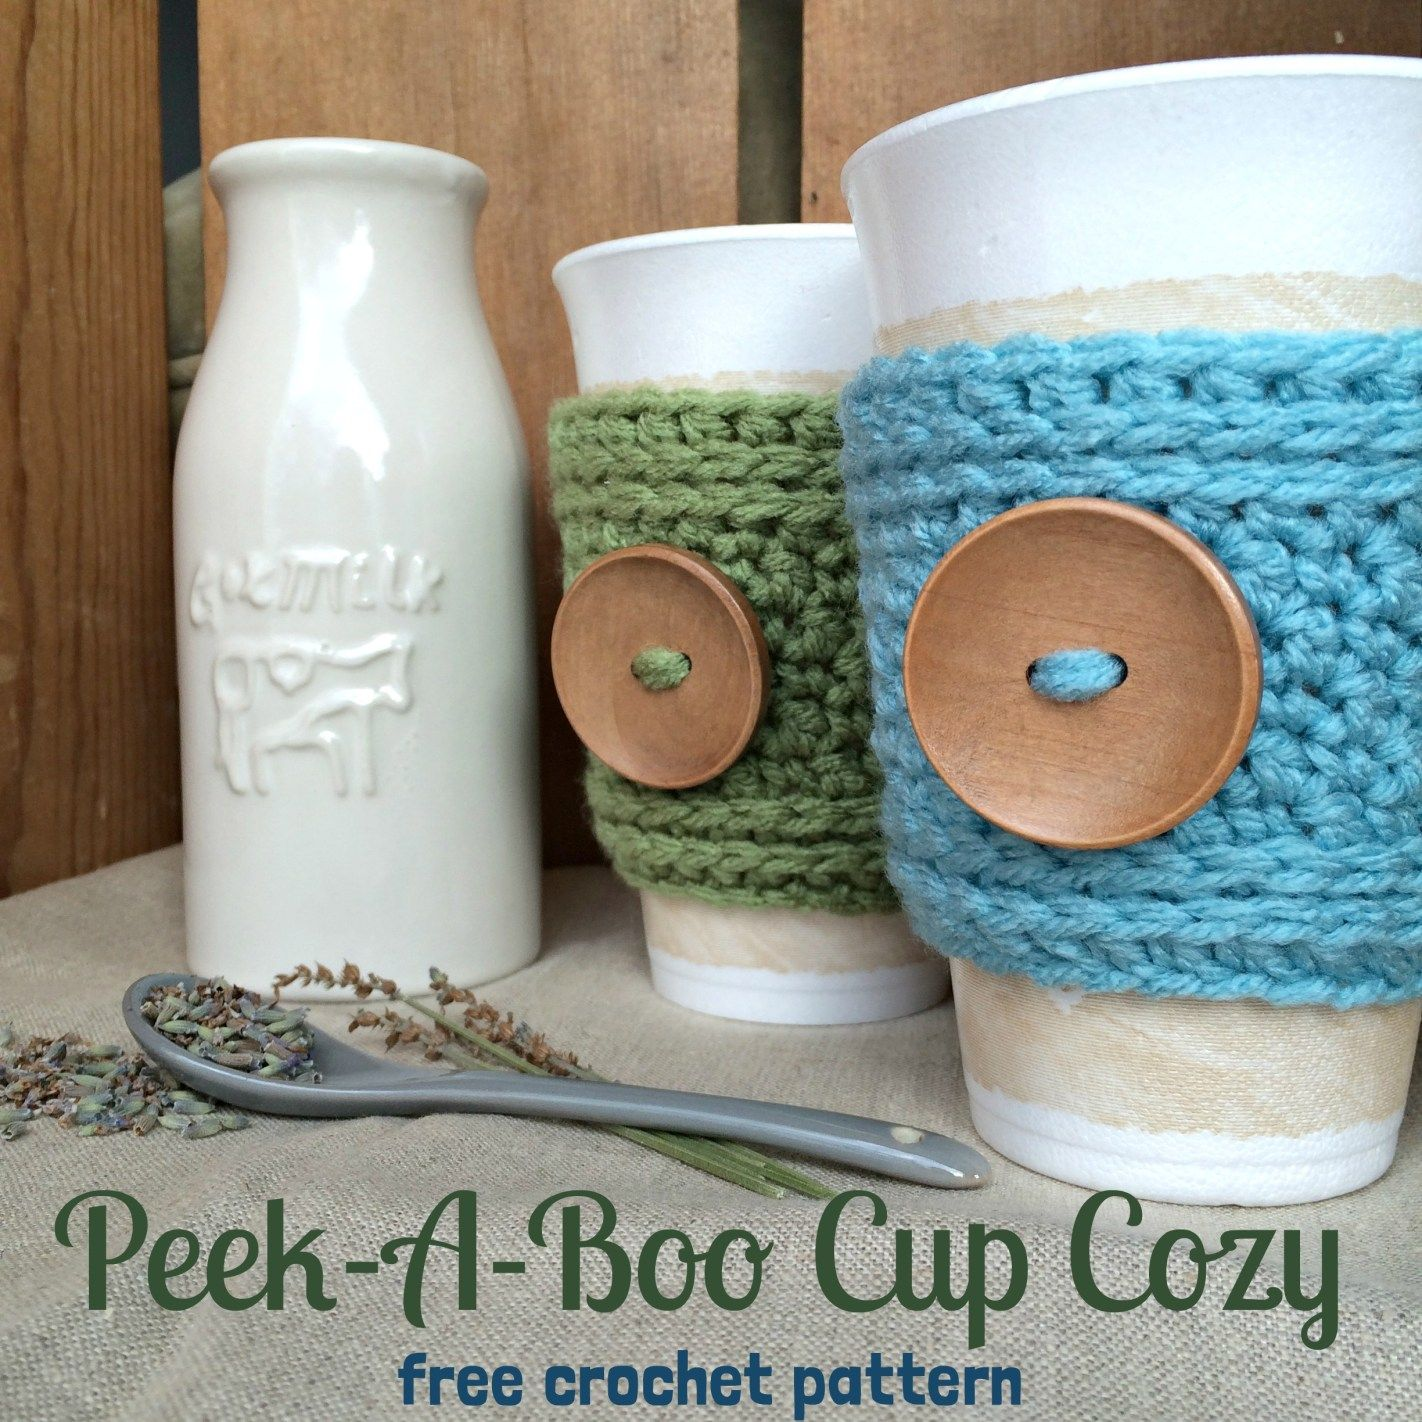 Crochet Cup Cozy Pattern | Peek-A-Boo Cup Cozy | Free Pattern from ...